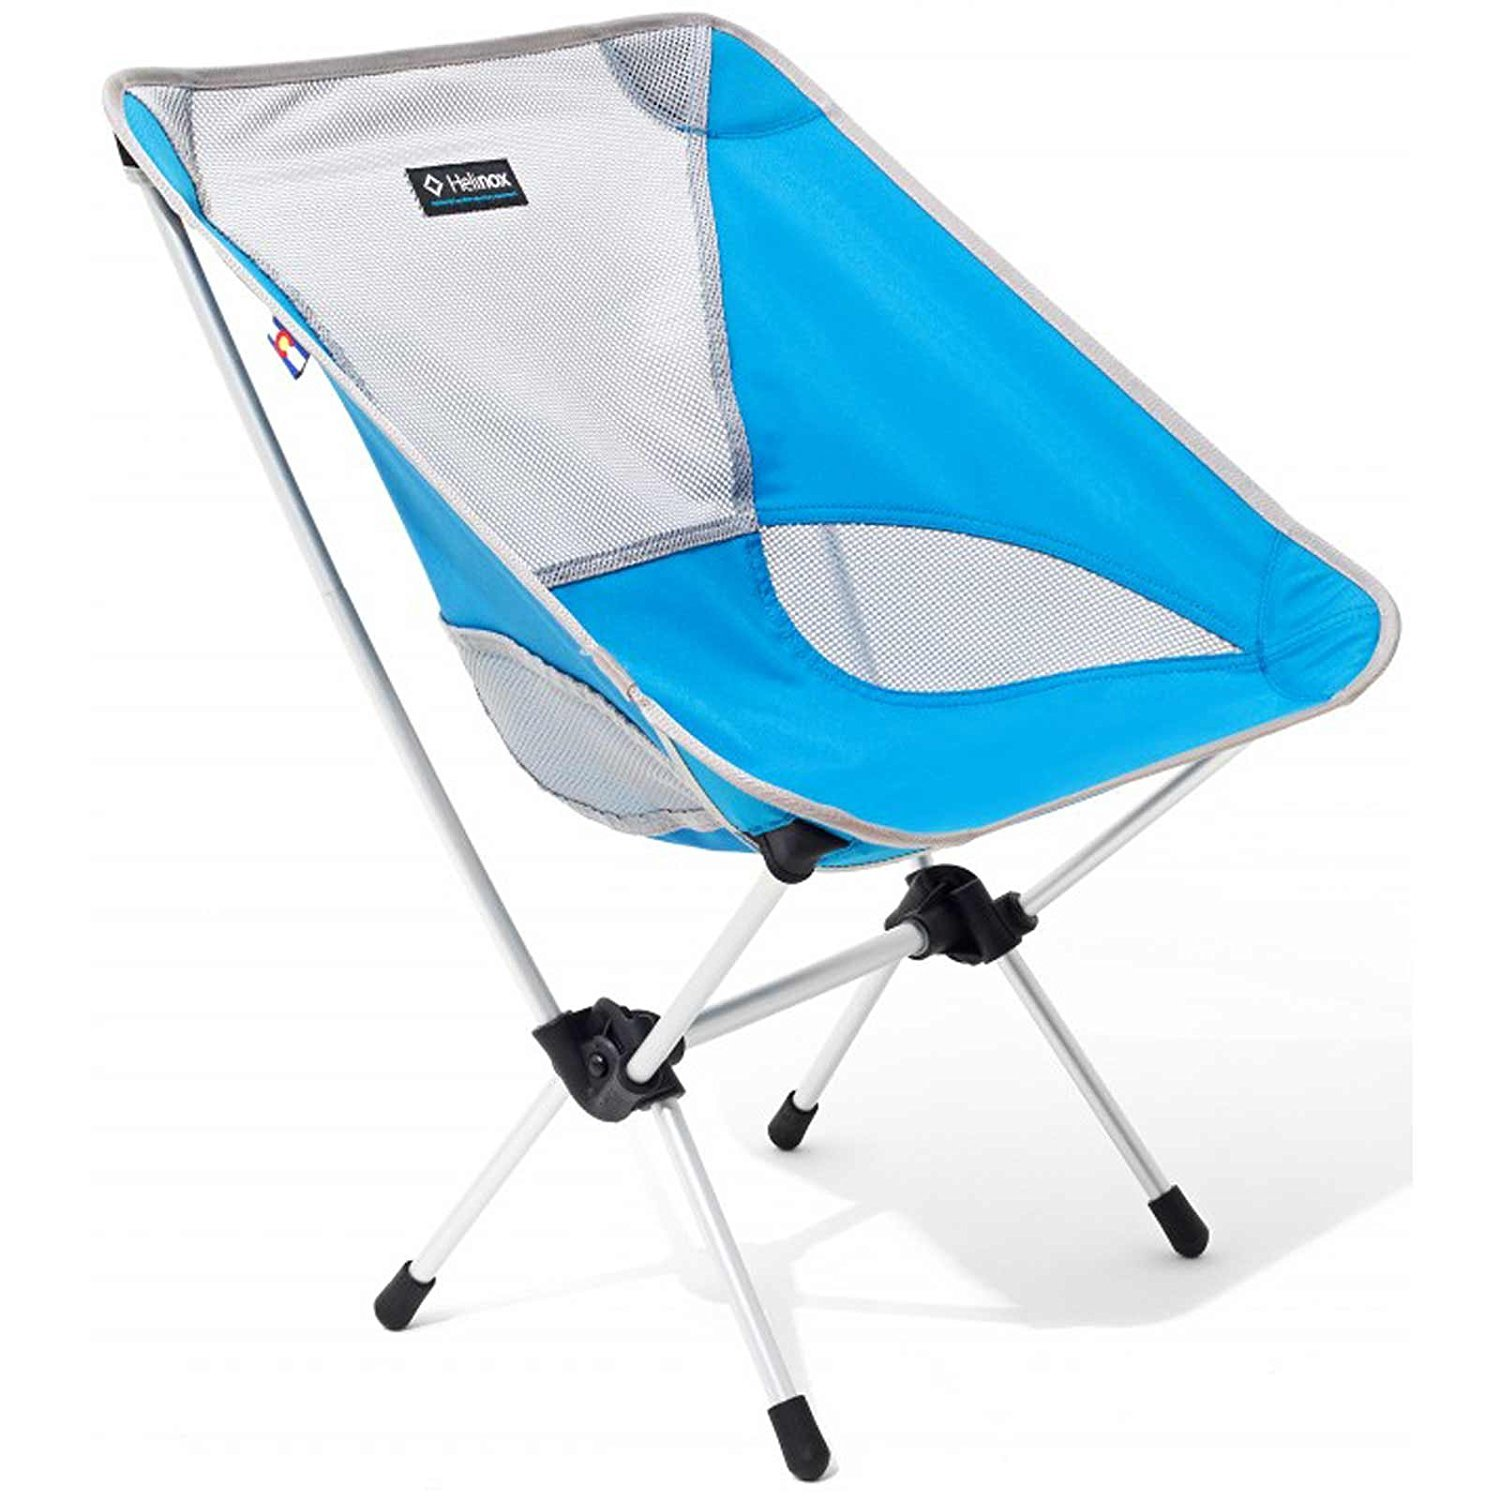 Helinox – Chair One, The Ultimate Camp Chair, 15th Anniversary Print